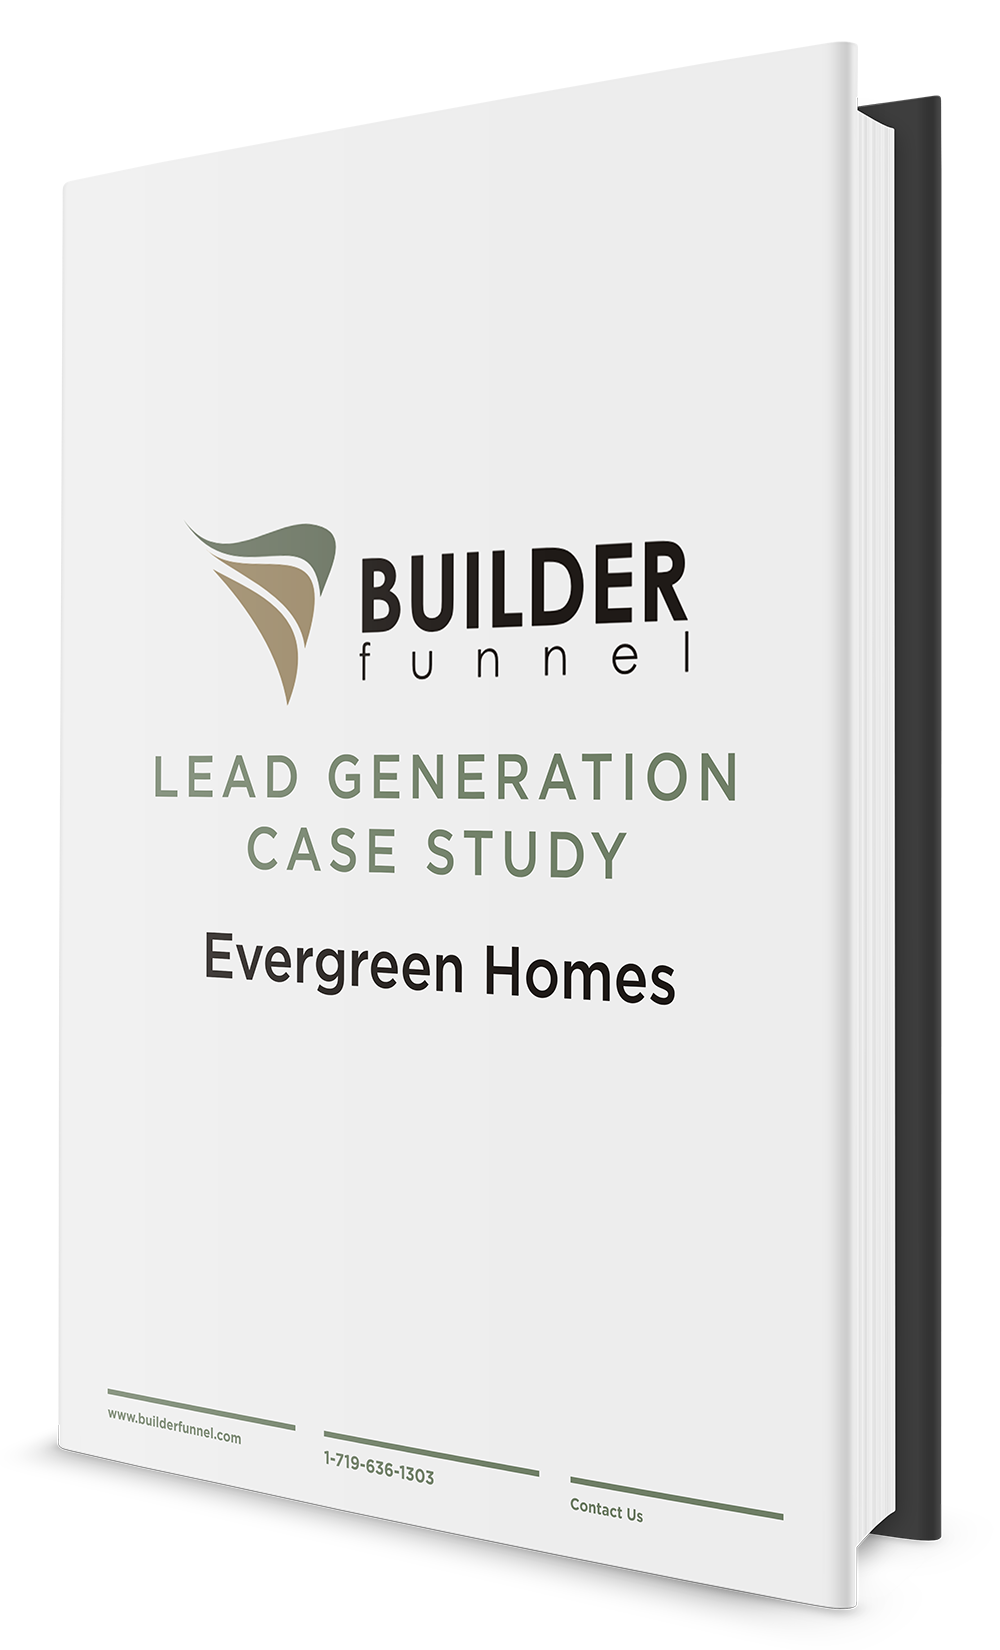 lead-generation-case-study-evergreen-homes-ebook.png